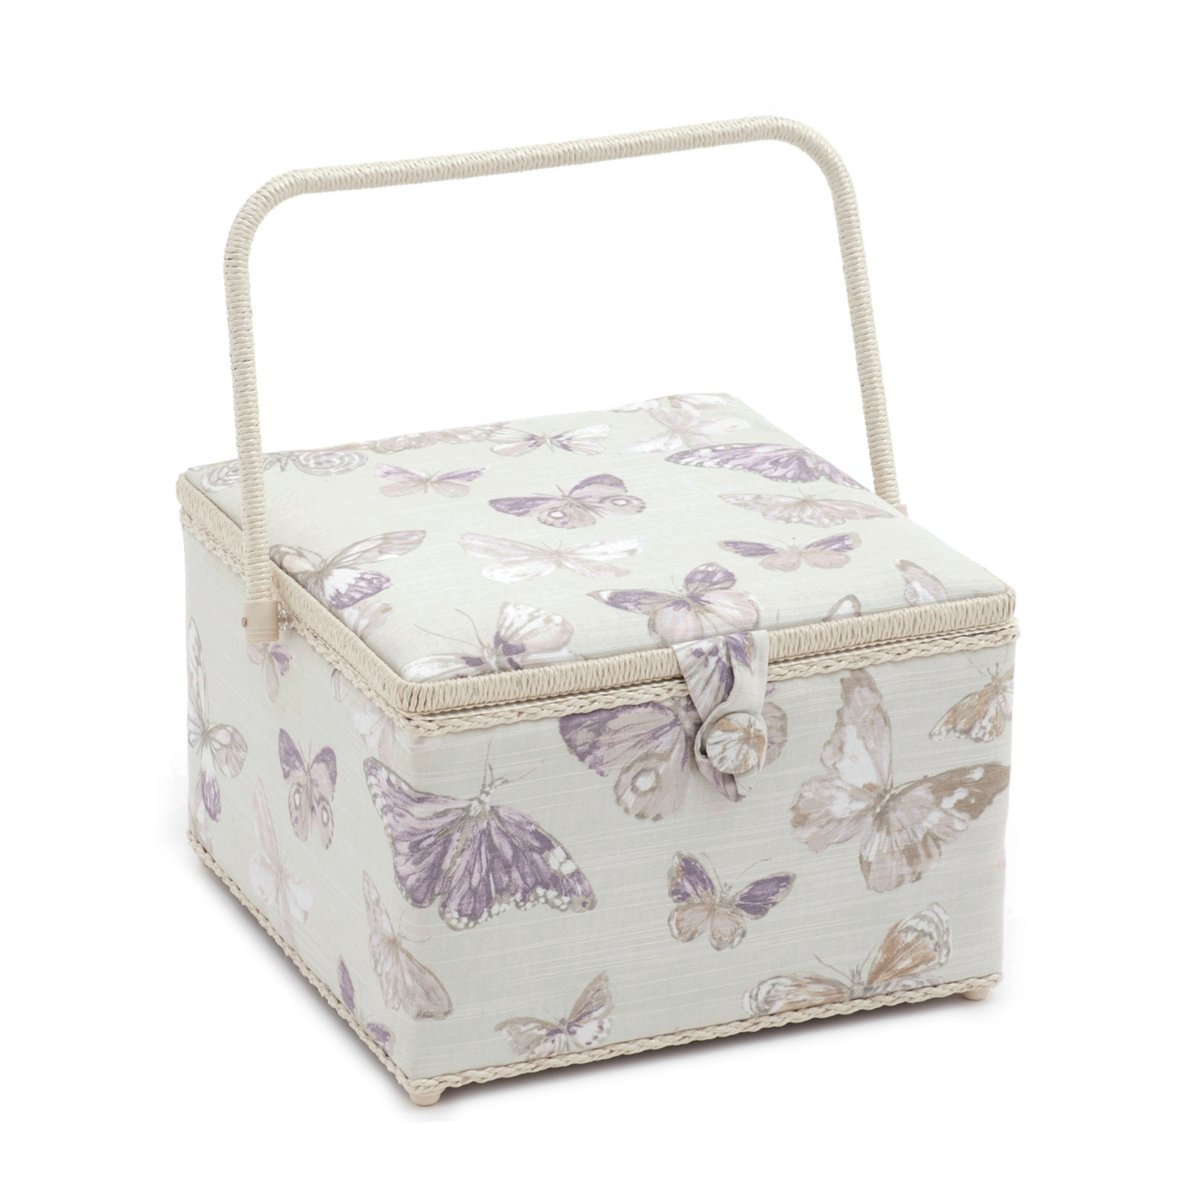 Hobby Gift 'Briarfield Hydrangea' Large Square Sewing Box 30.5 x 30.5 x 22cm (d/w/h) HGX\355